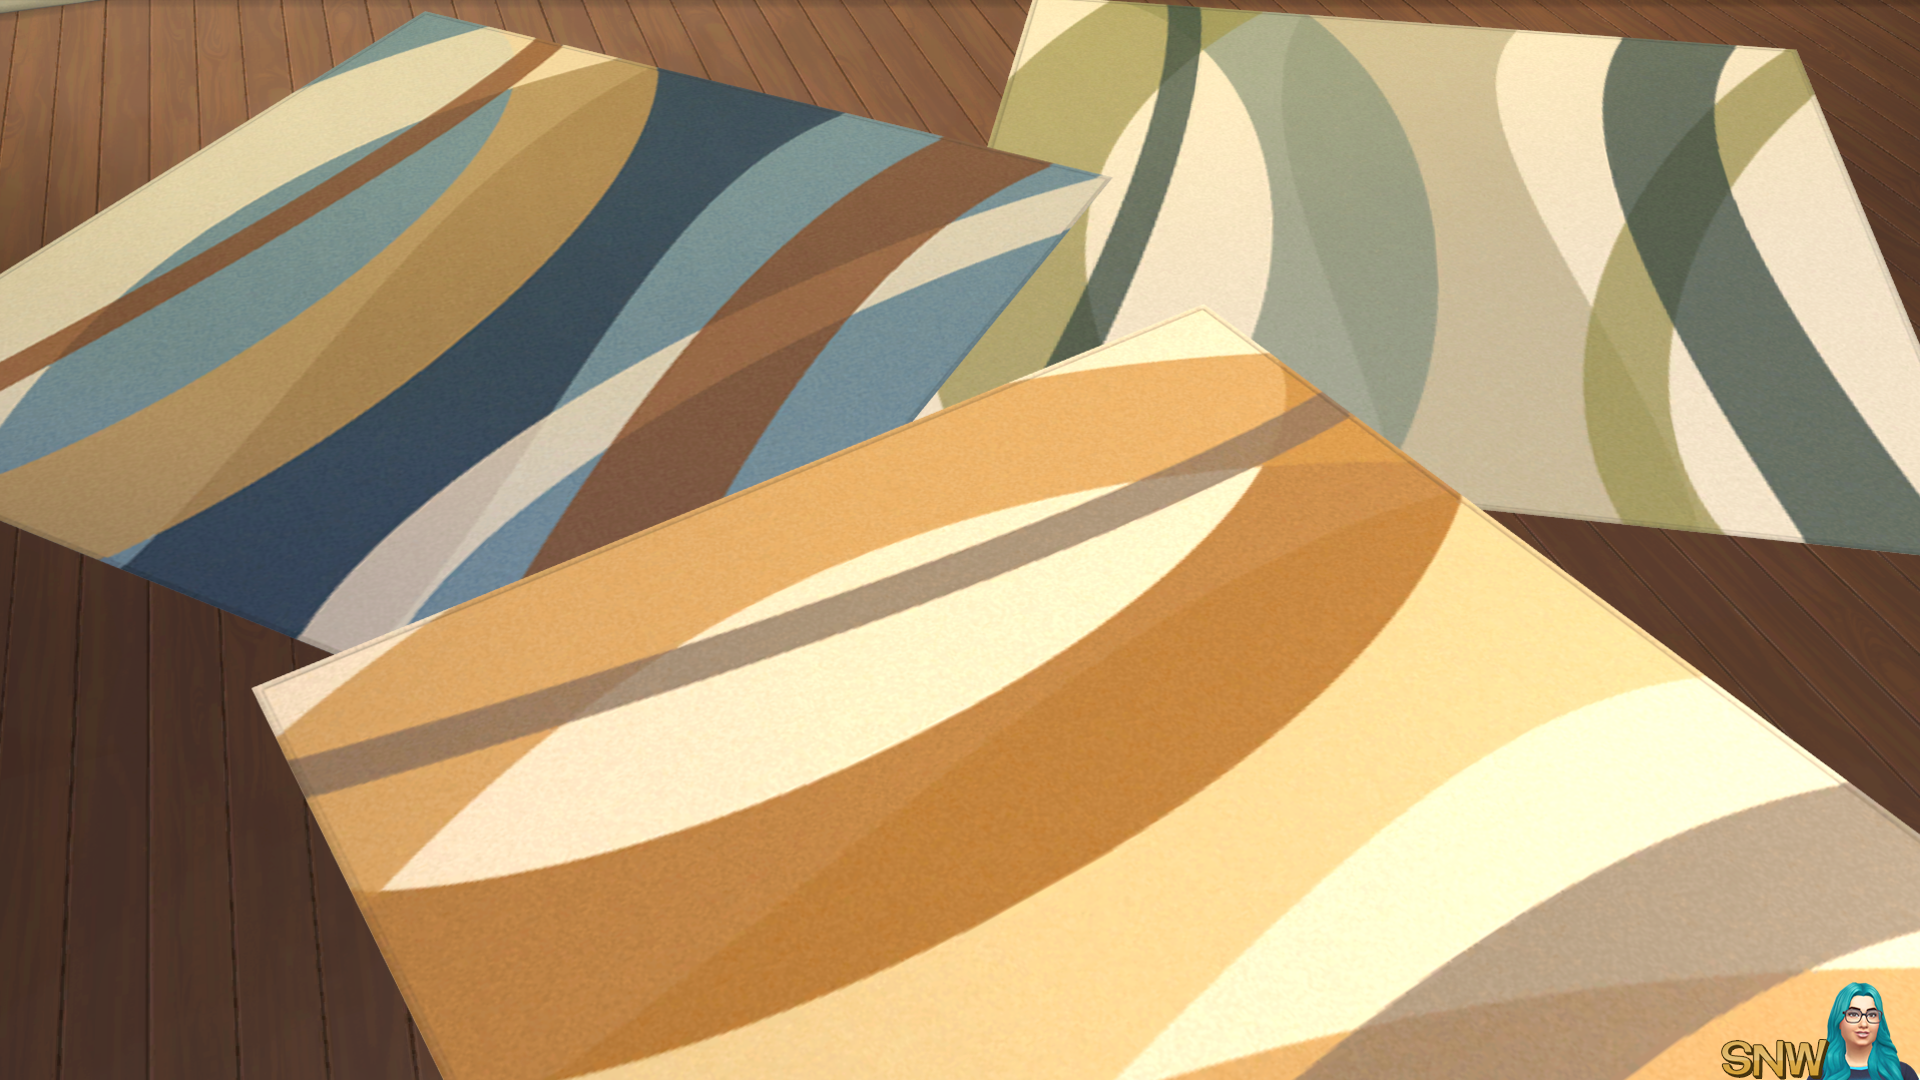 Abstract Rugs for The Sims 4